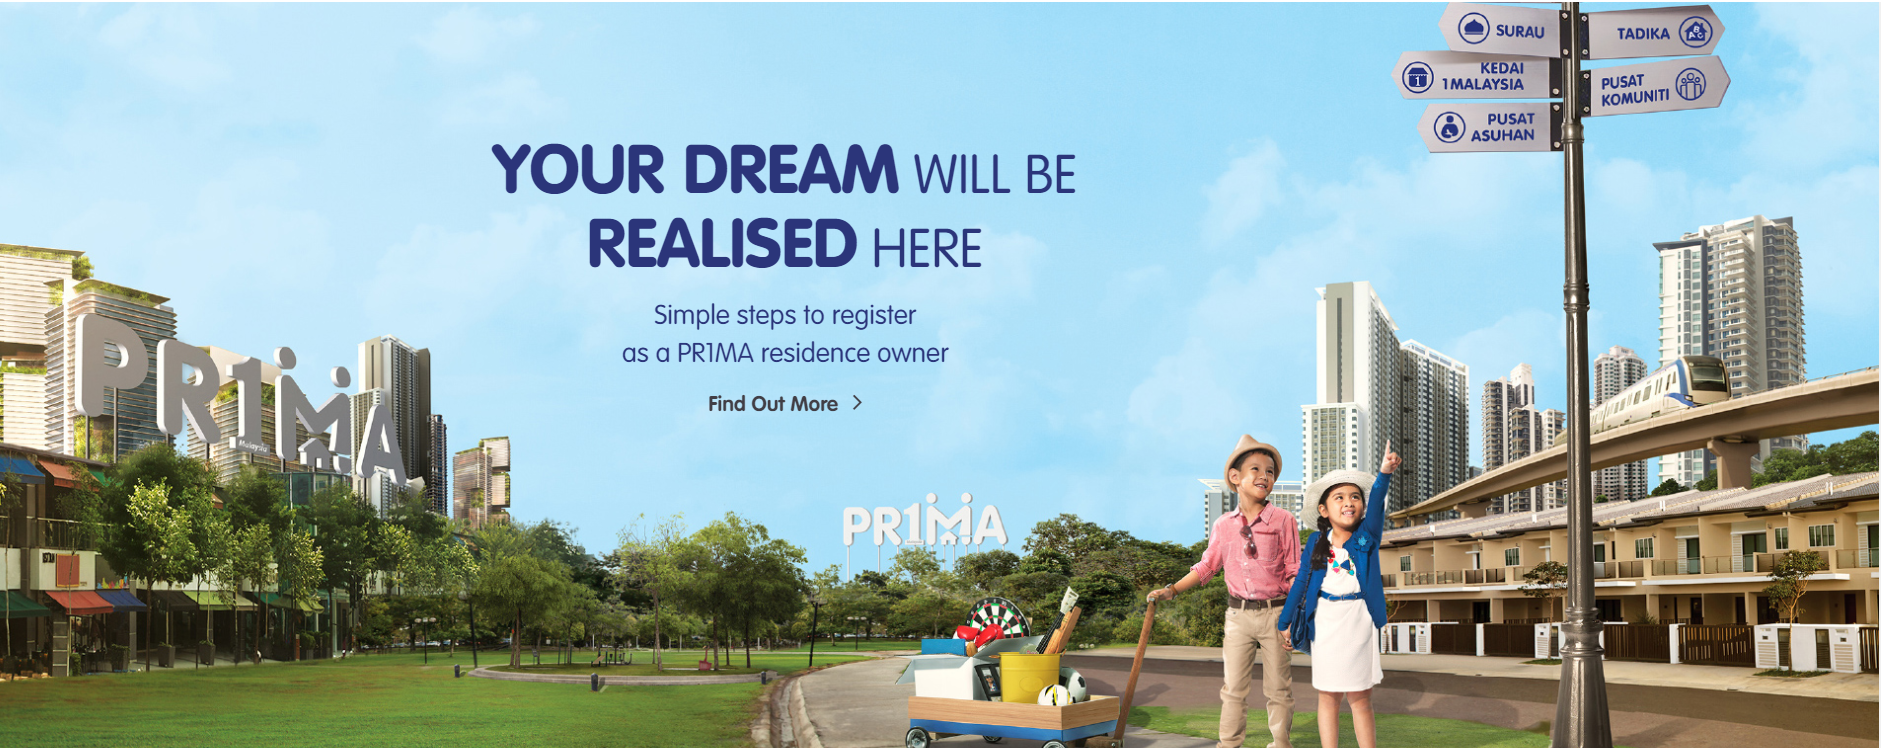 PR1MA, how to apply for PR1MA, PRIMA